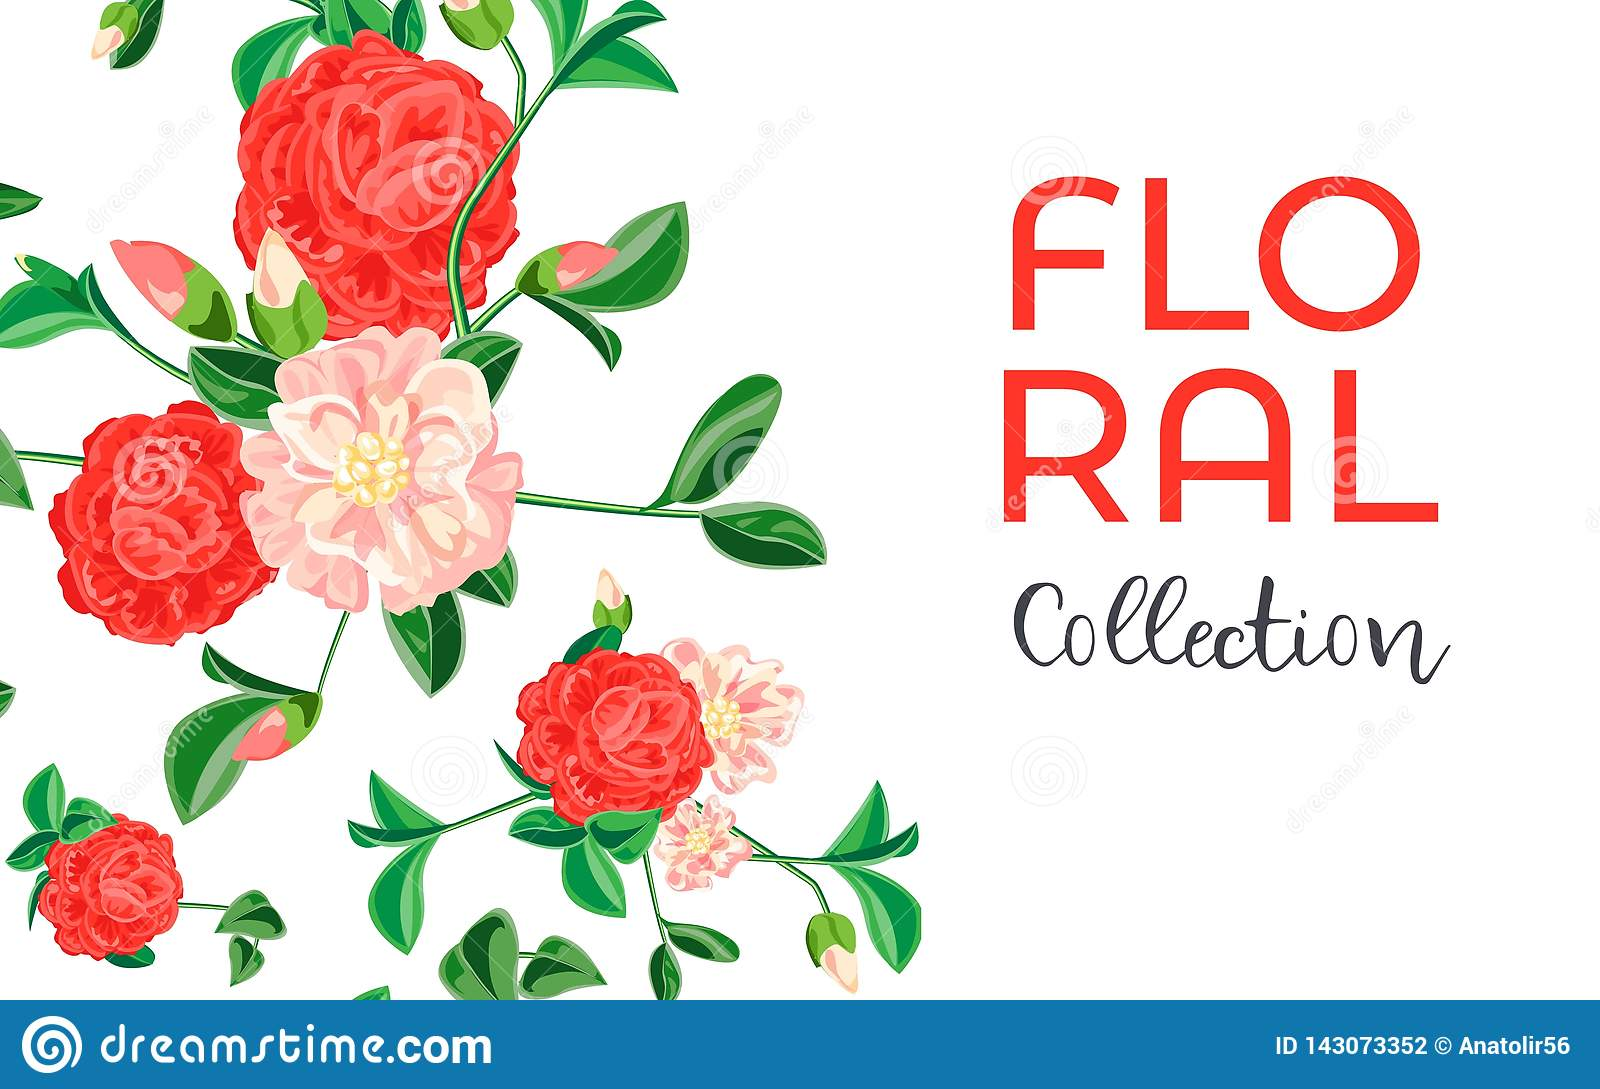 Camellia flower collection concept banner, cartoon style